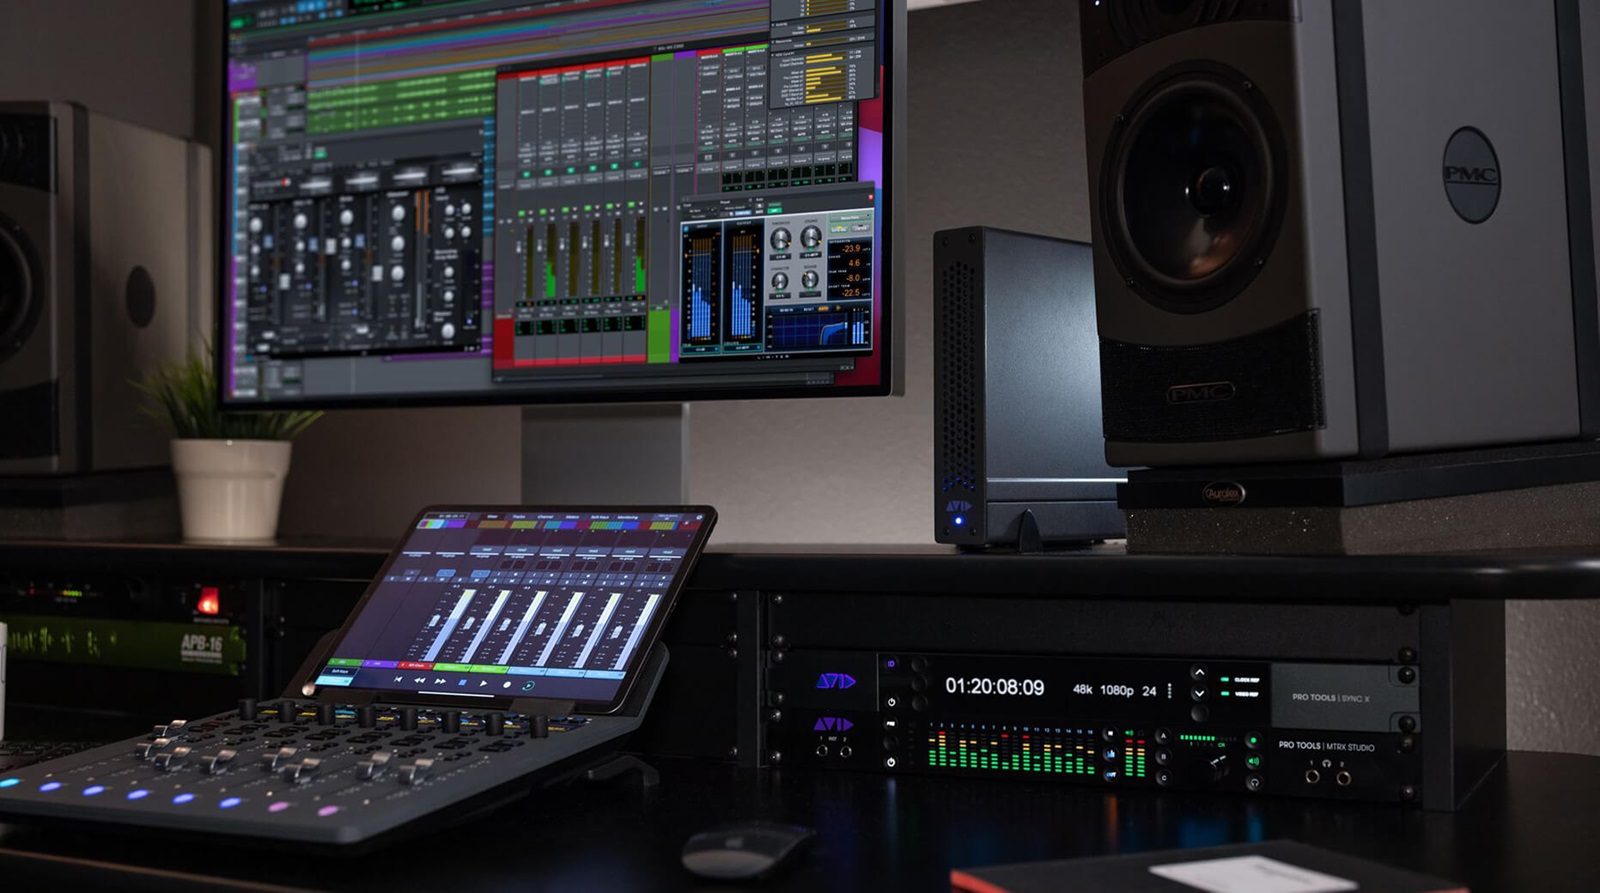 HDX Hybrid Engine with Avid S1 control surface and Pro Tools session